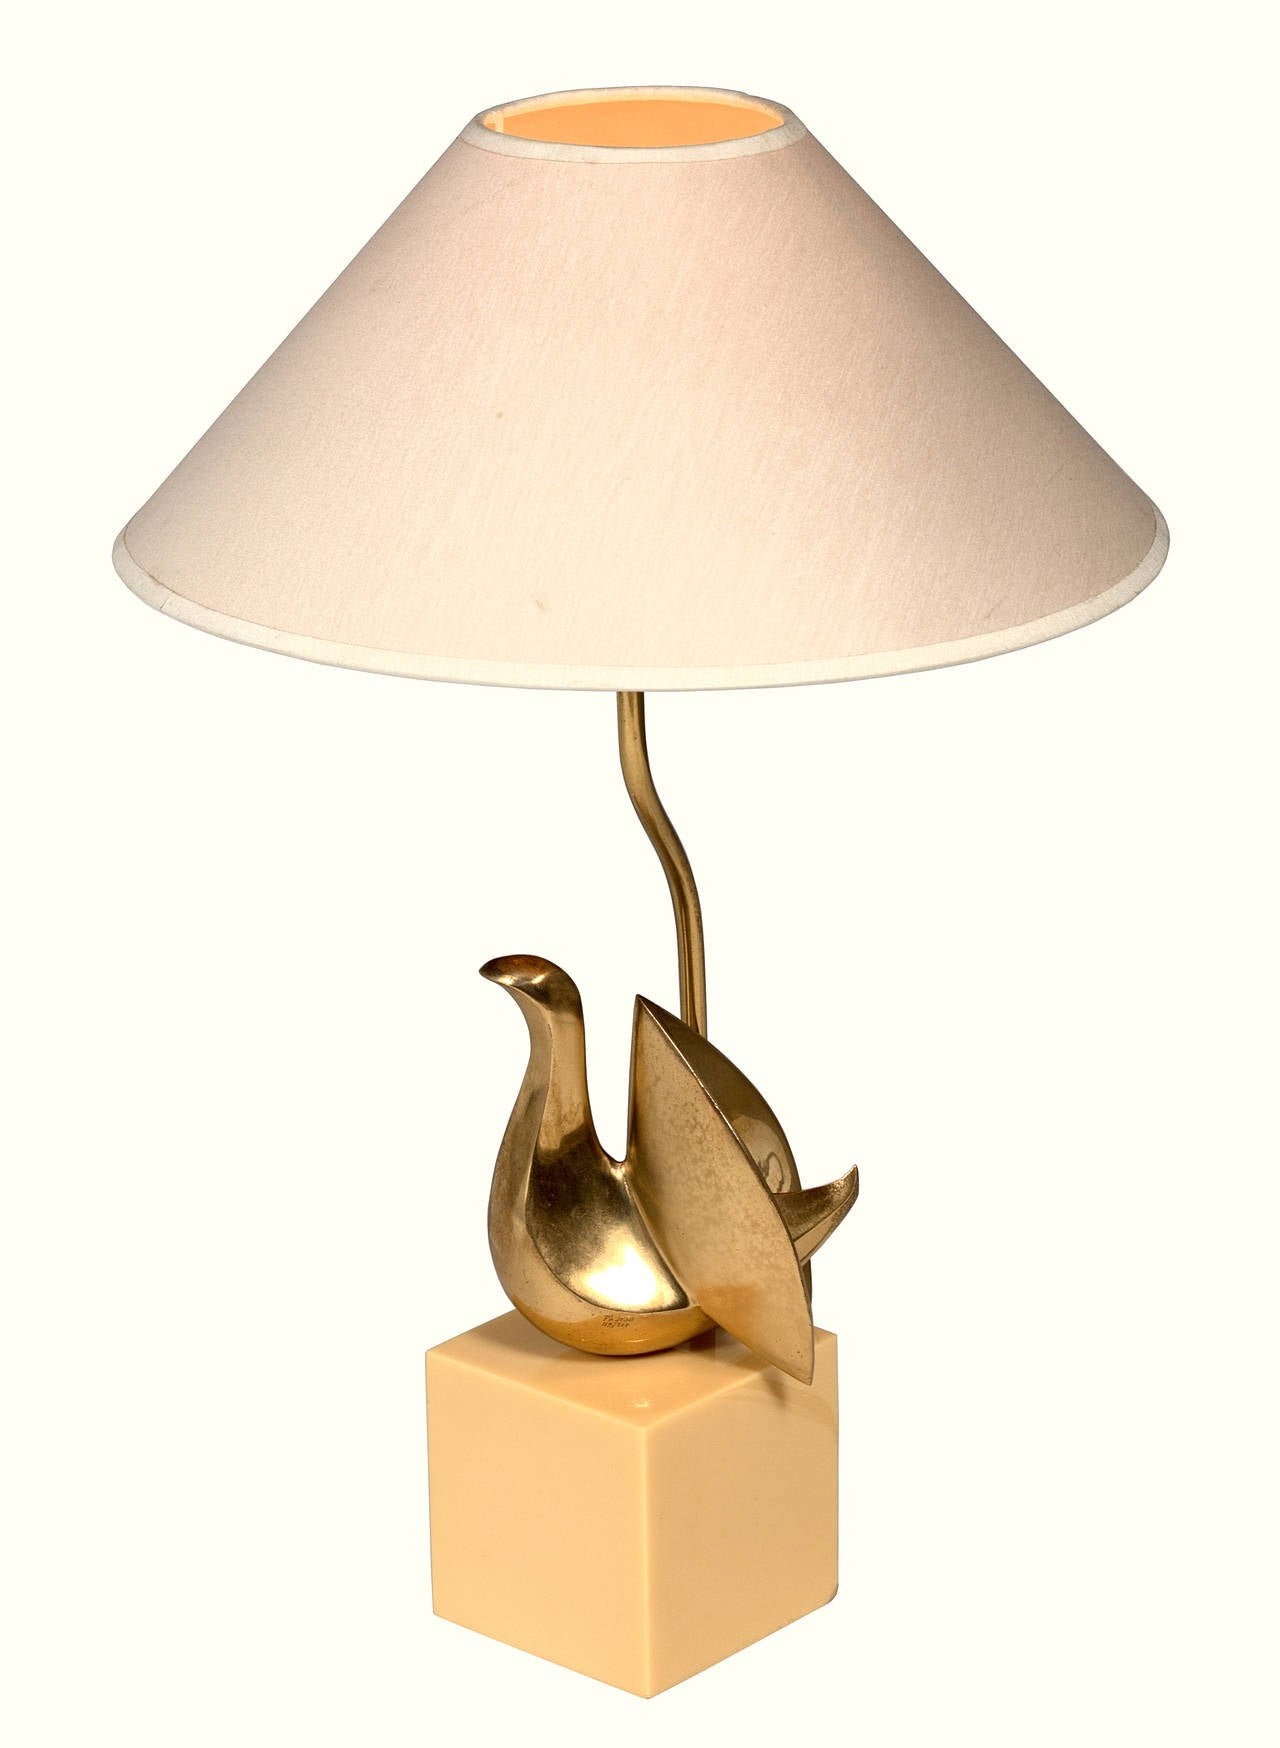 Table lamp by Philippe Jean, signed and numerated, 119/300 Ph. Jean, Original condition.